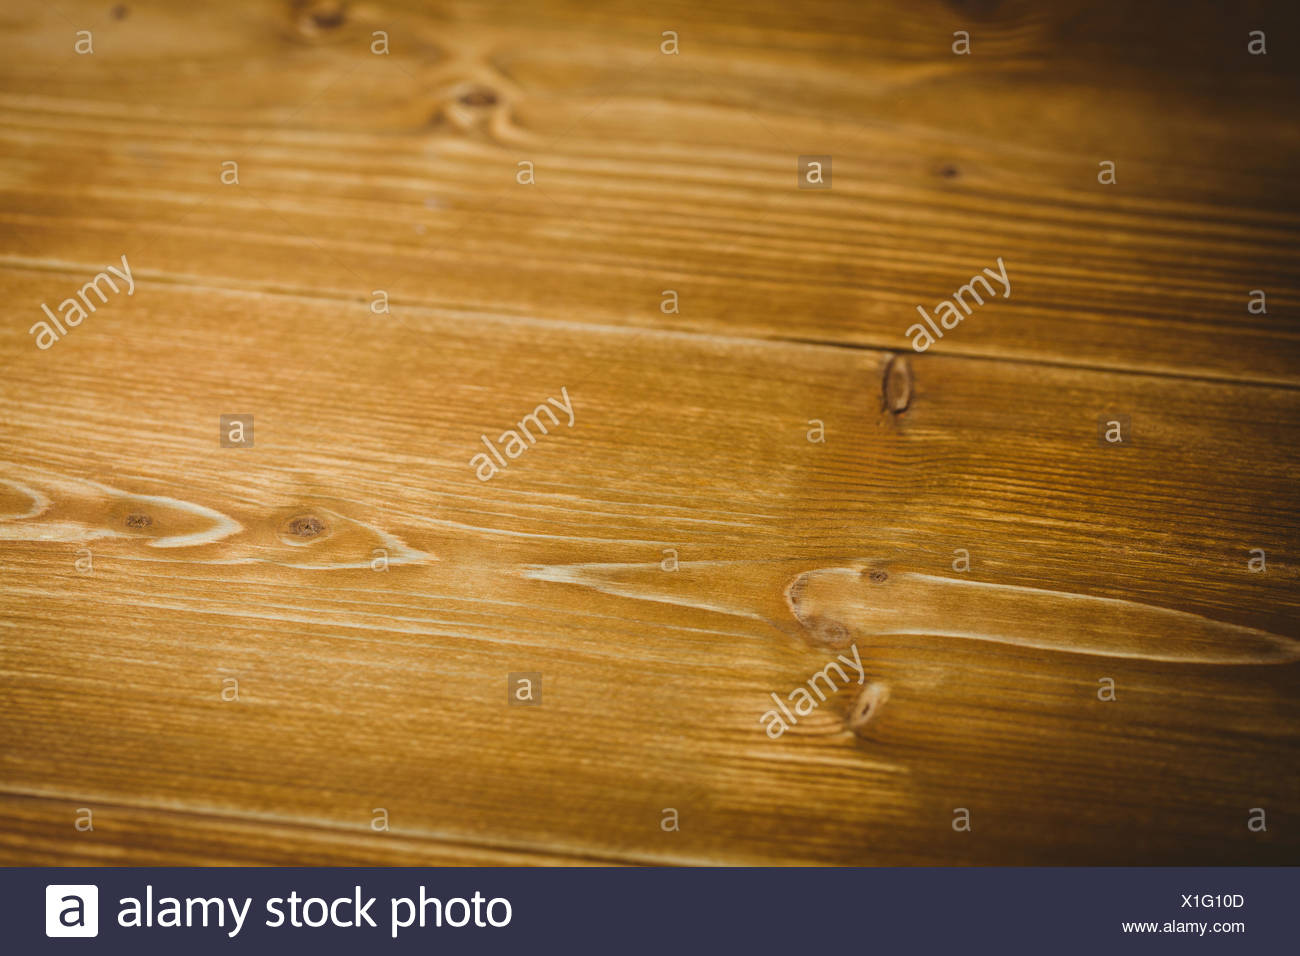 Overhead wooden table - Stock Image